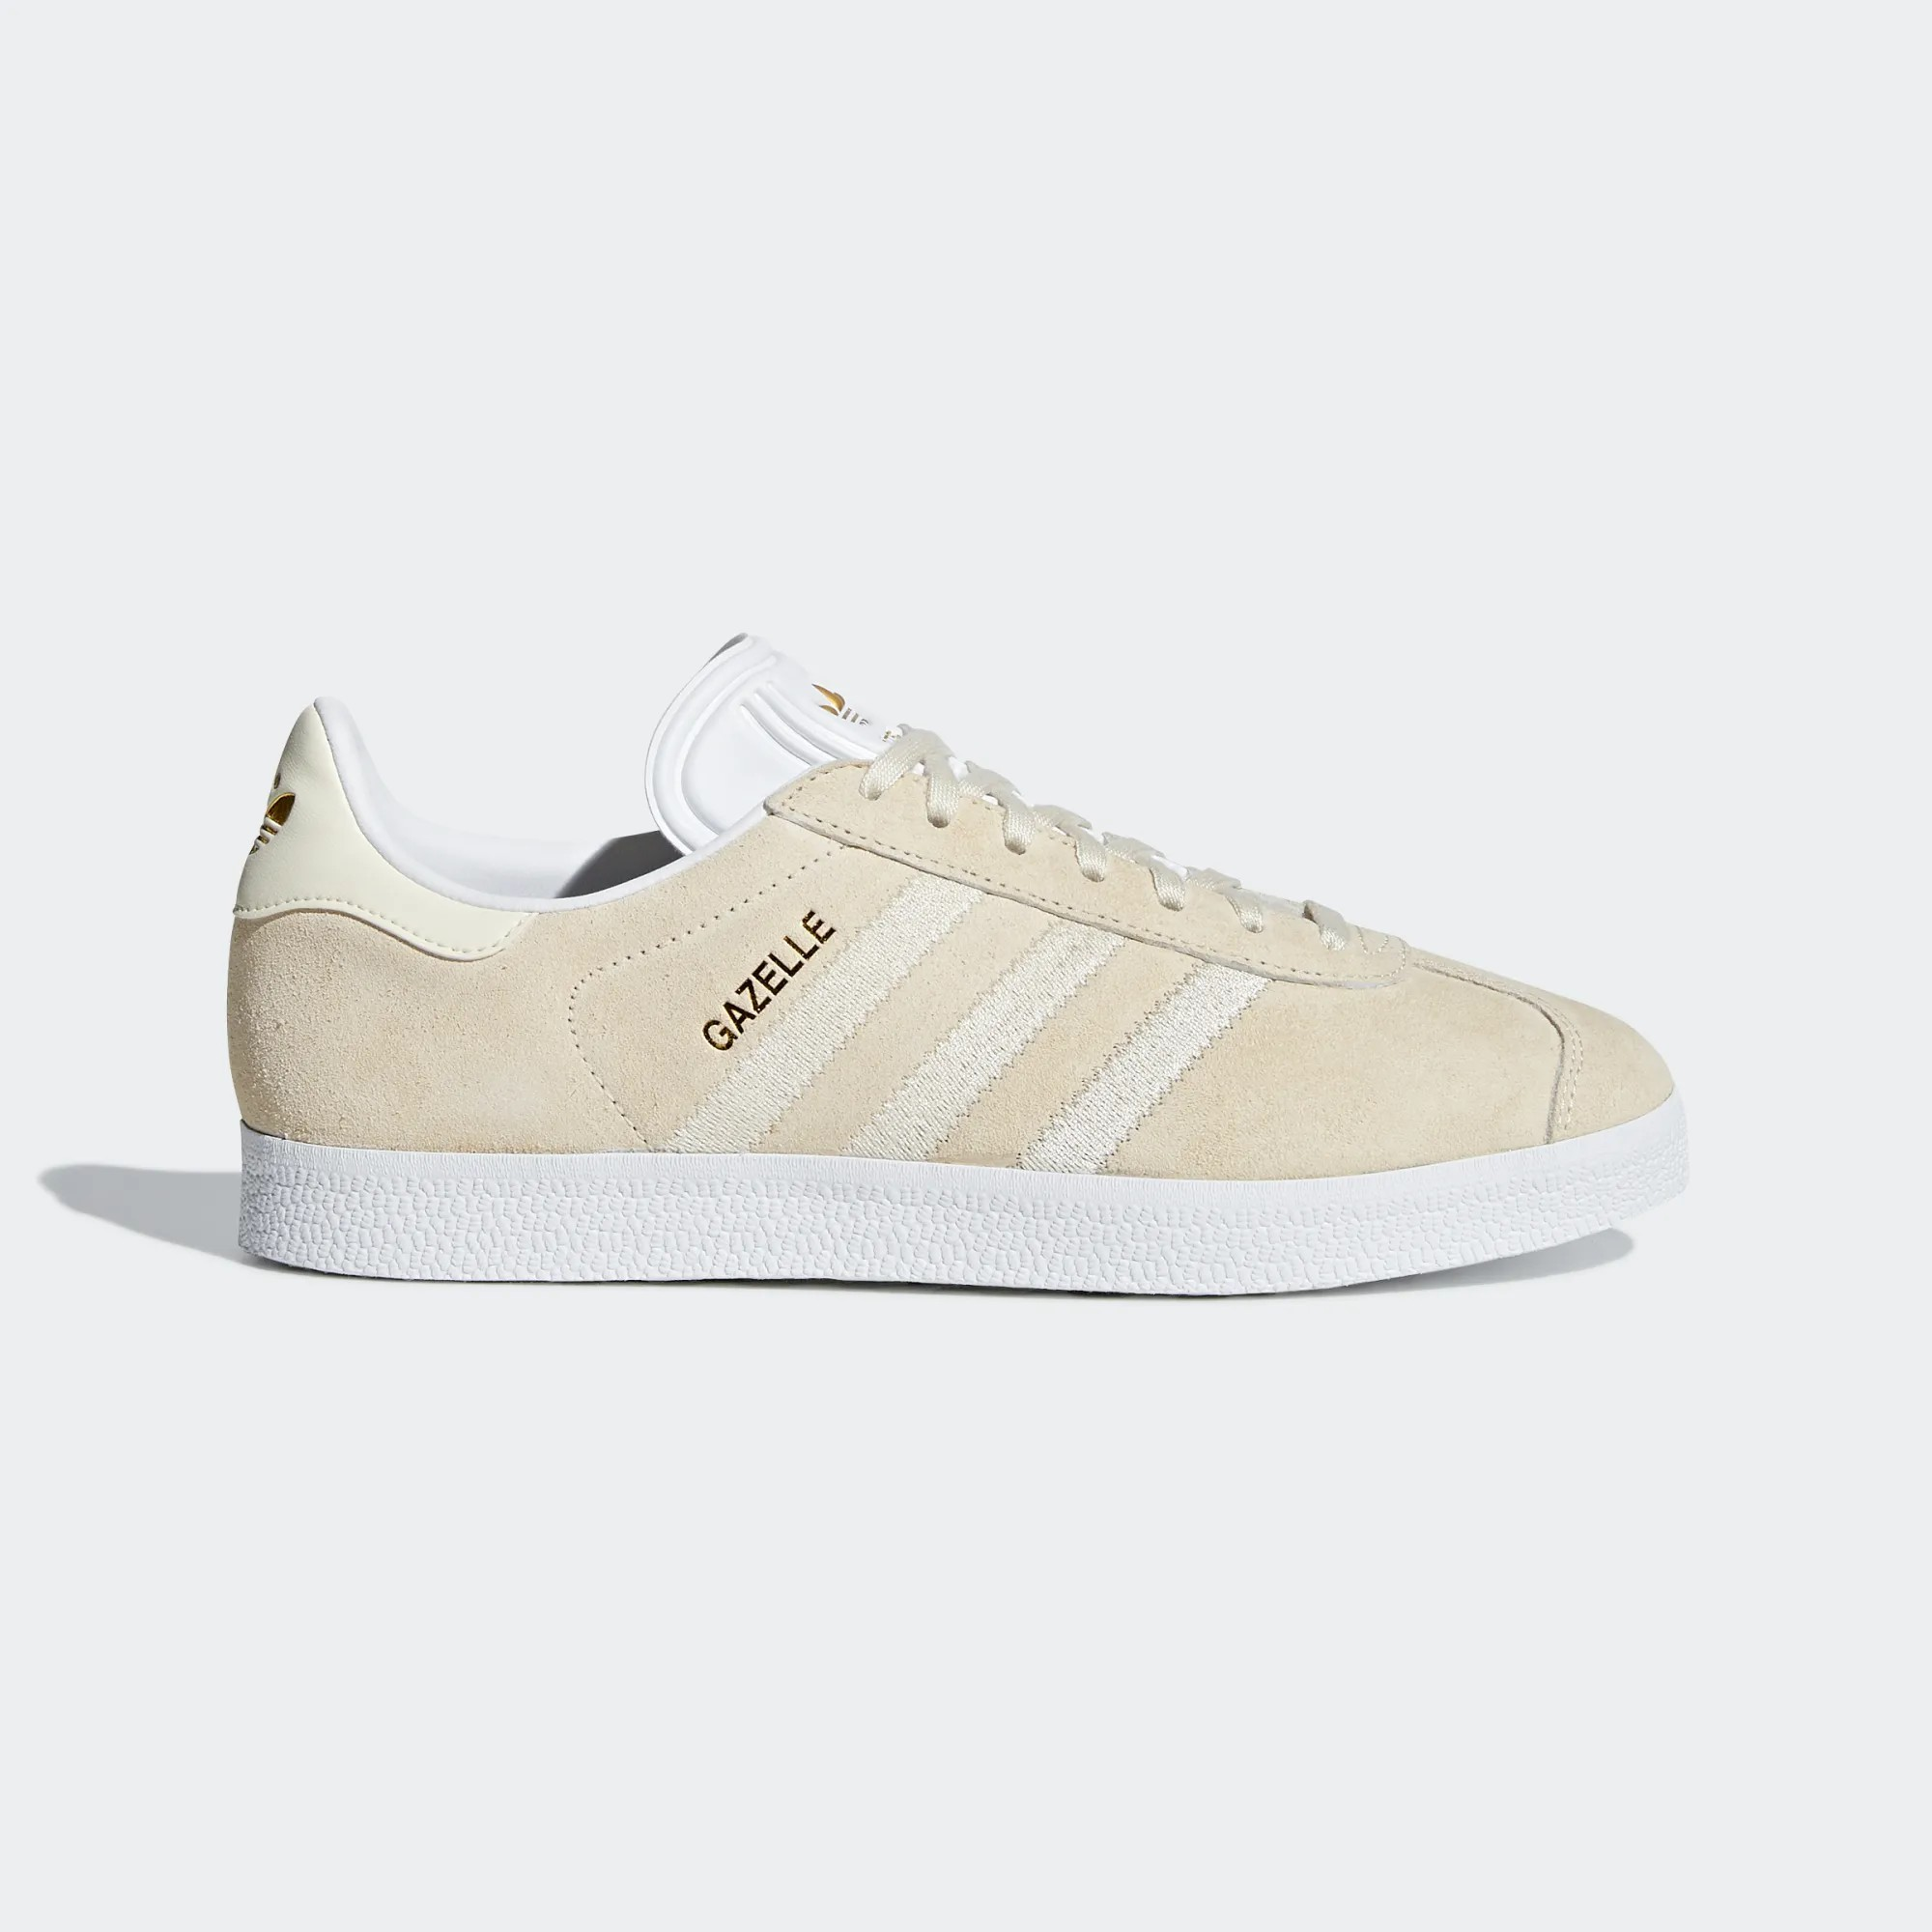 Adidas Women Gazelle Shoes Ecru Tint/Cloud White CG6055